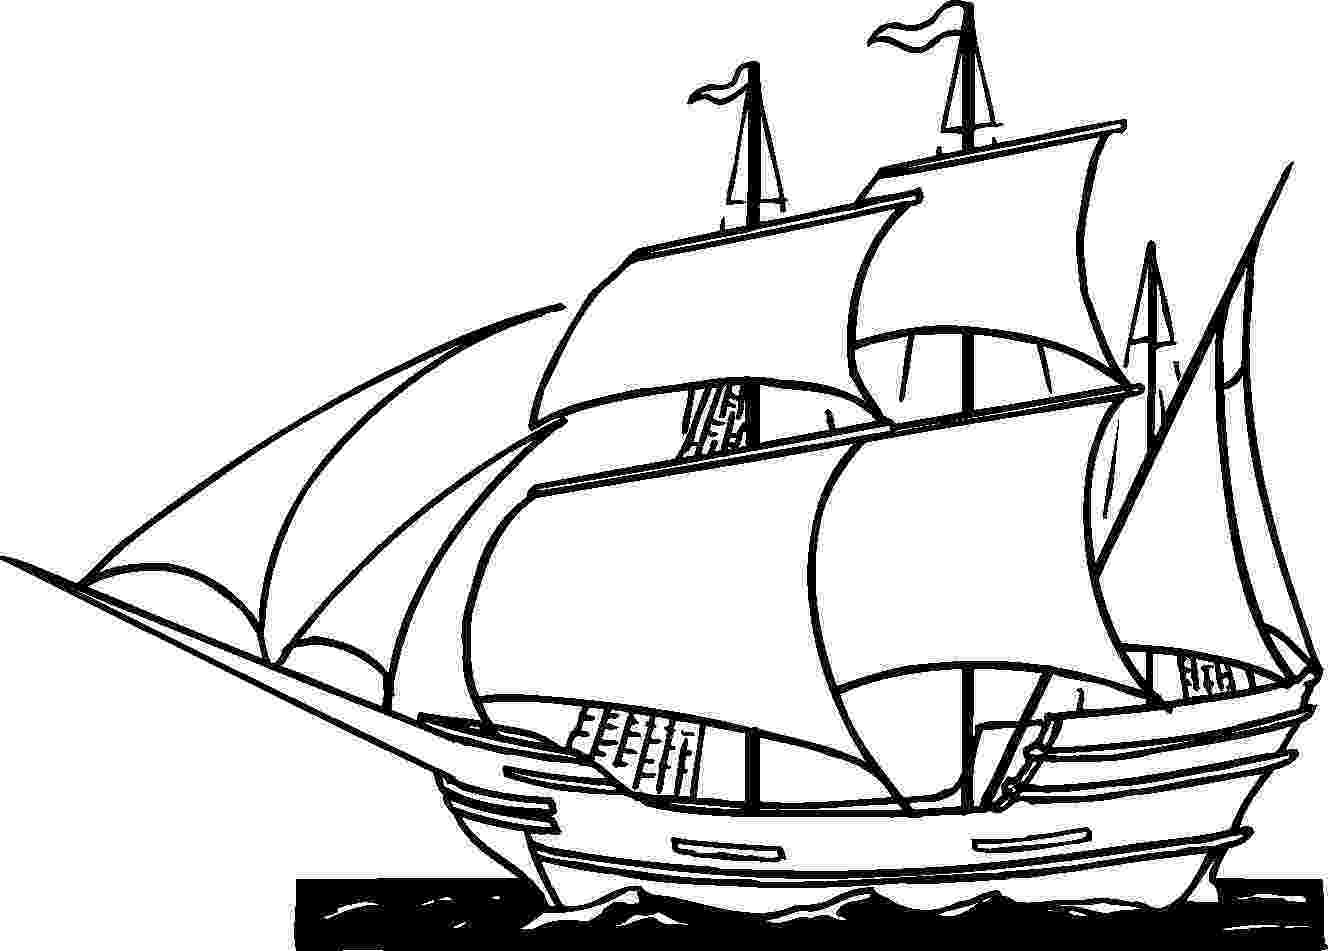 printable boat pictures printable boat coloring pages for kids cool2bkids pictures boat printable 1 2